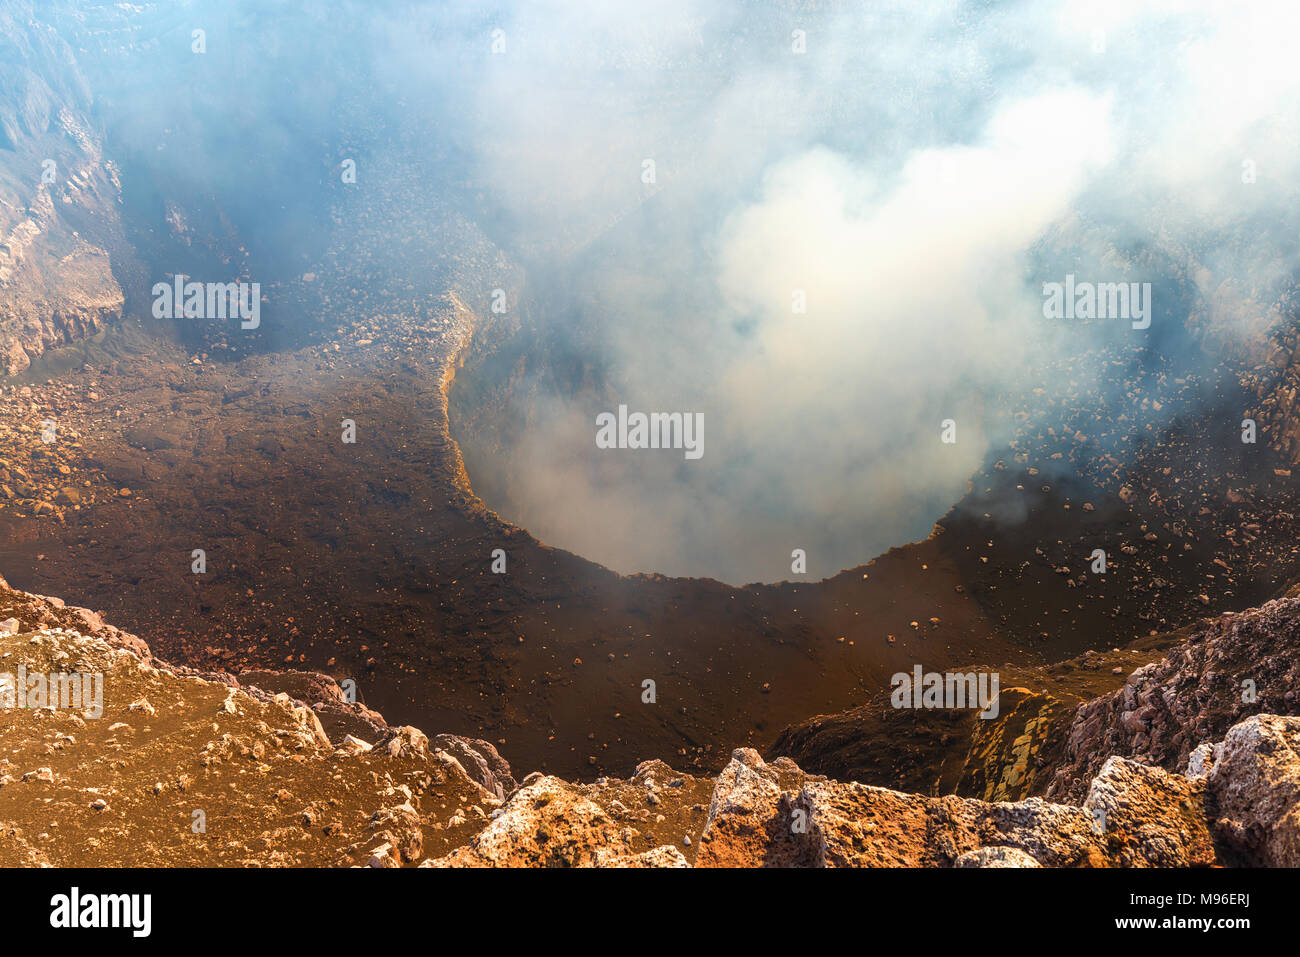 Interior of the volcanic crater of the Masaya volcano with gas emissions (sulphur dioxide) between Managua and Granada, Nicaragua, Central America. - Stock Image